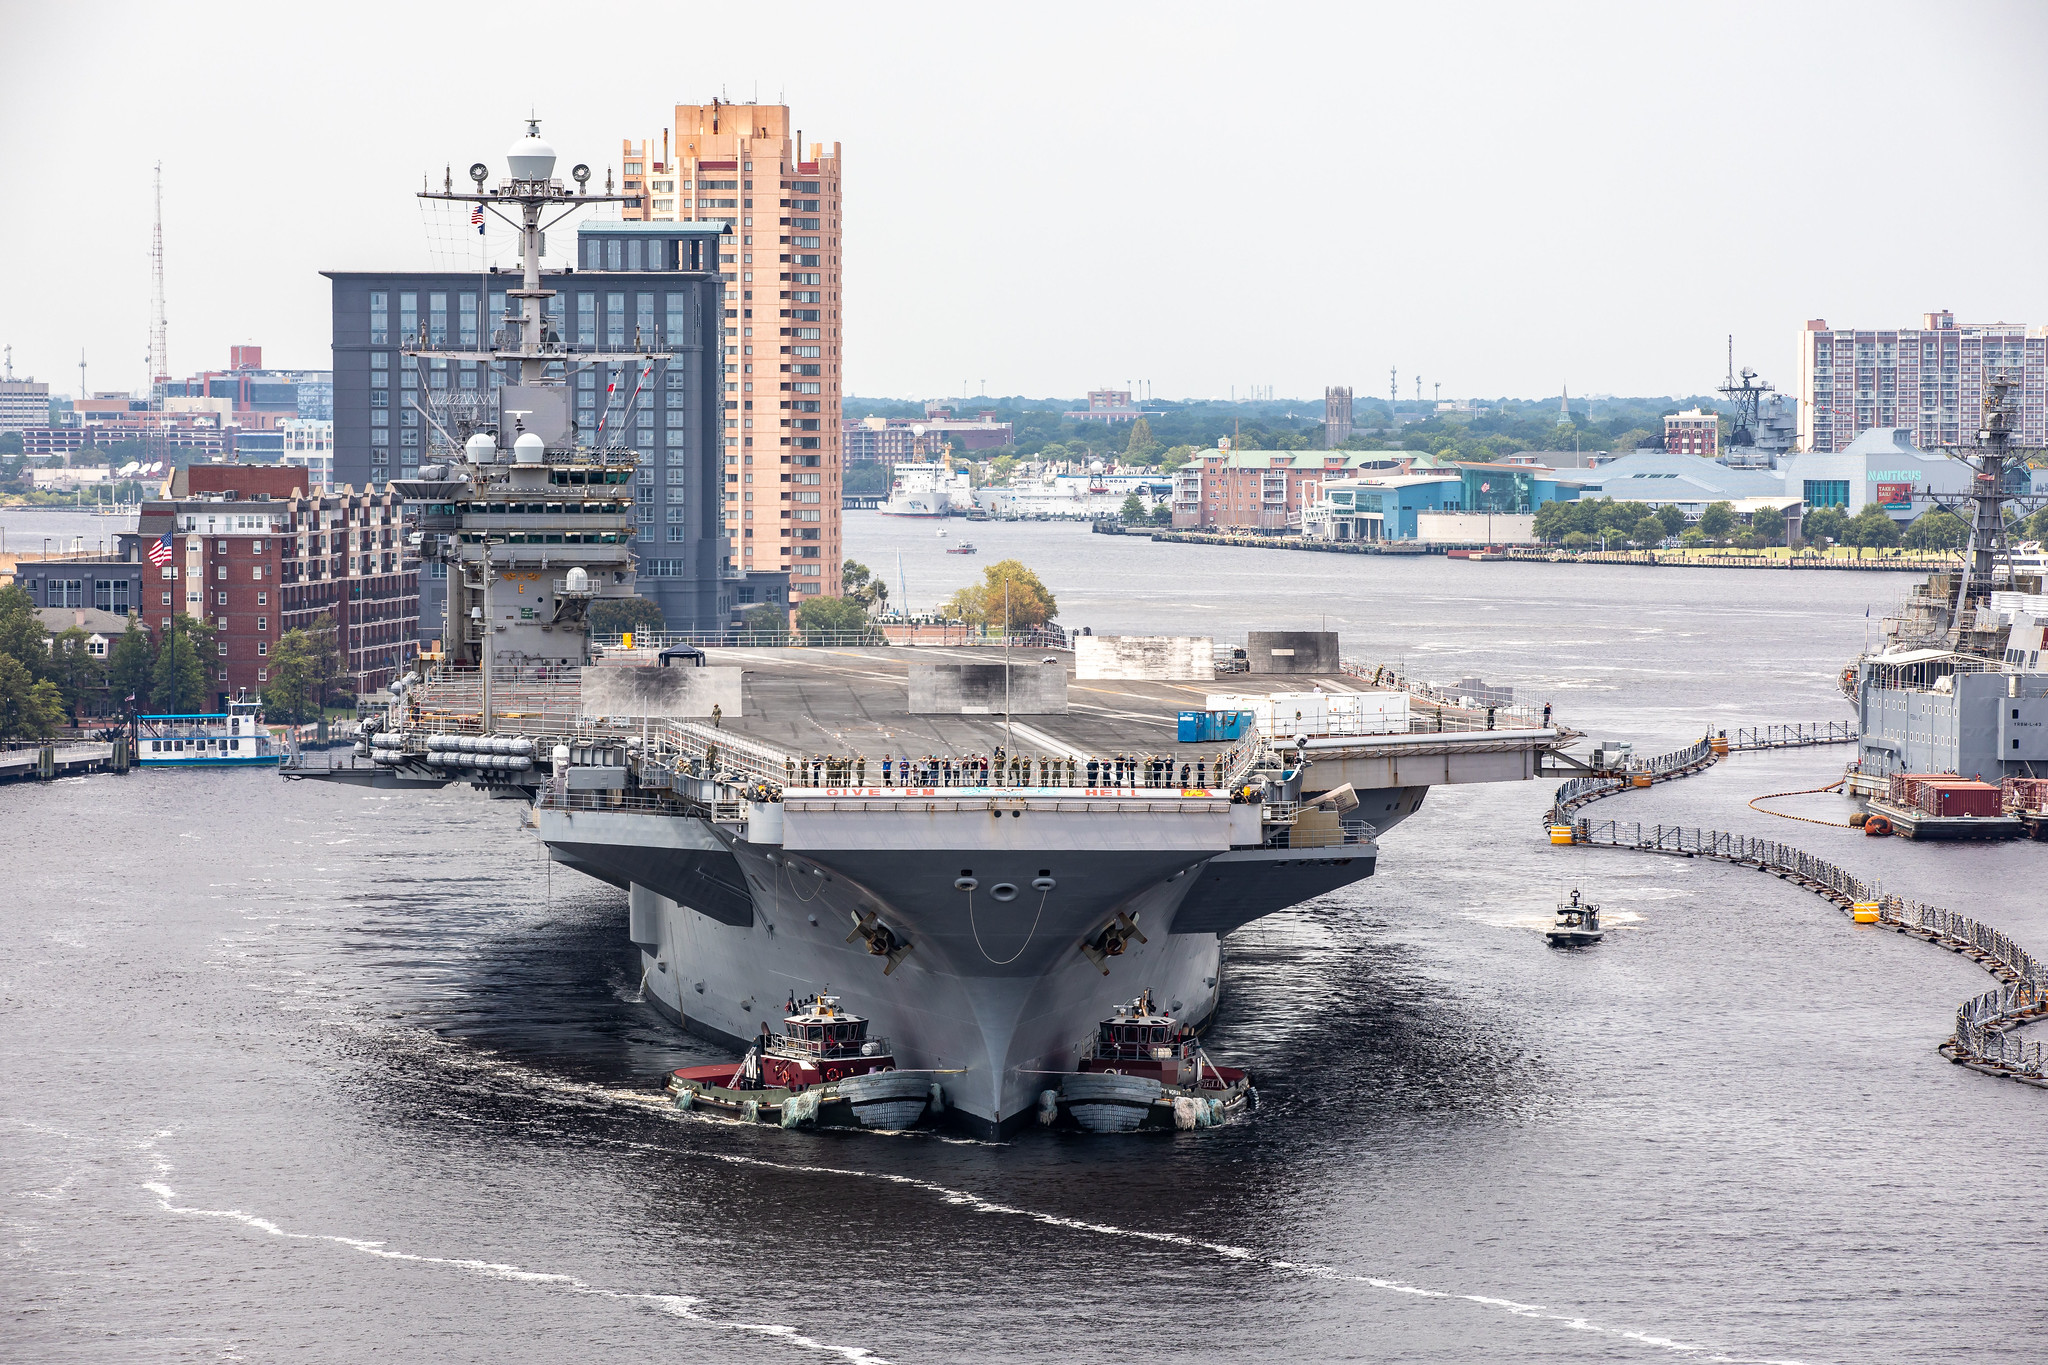 The aircraft carrier USS Harry S. Truman (CVN 75) arrives at Norfolk Naval Shipyard in Portsmouth, Va., July 7, 2020, for an extended carrier incremental availability. (Shelby West/Navy)